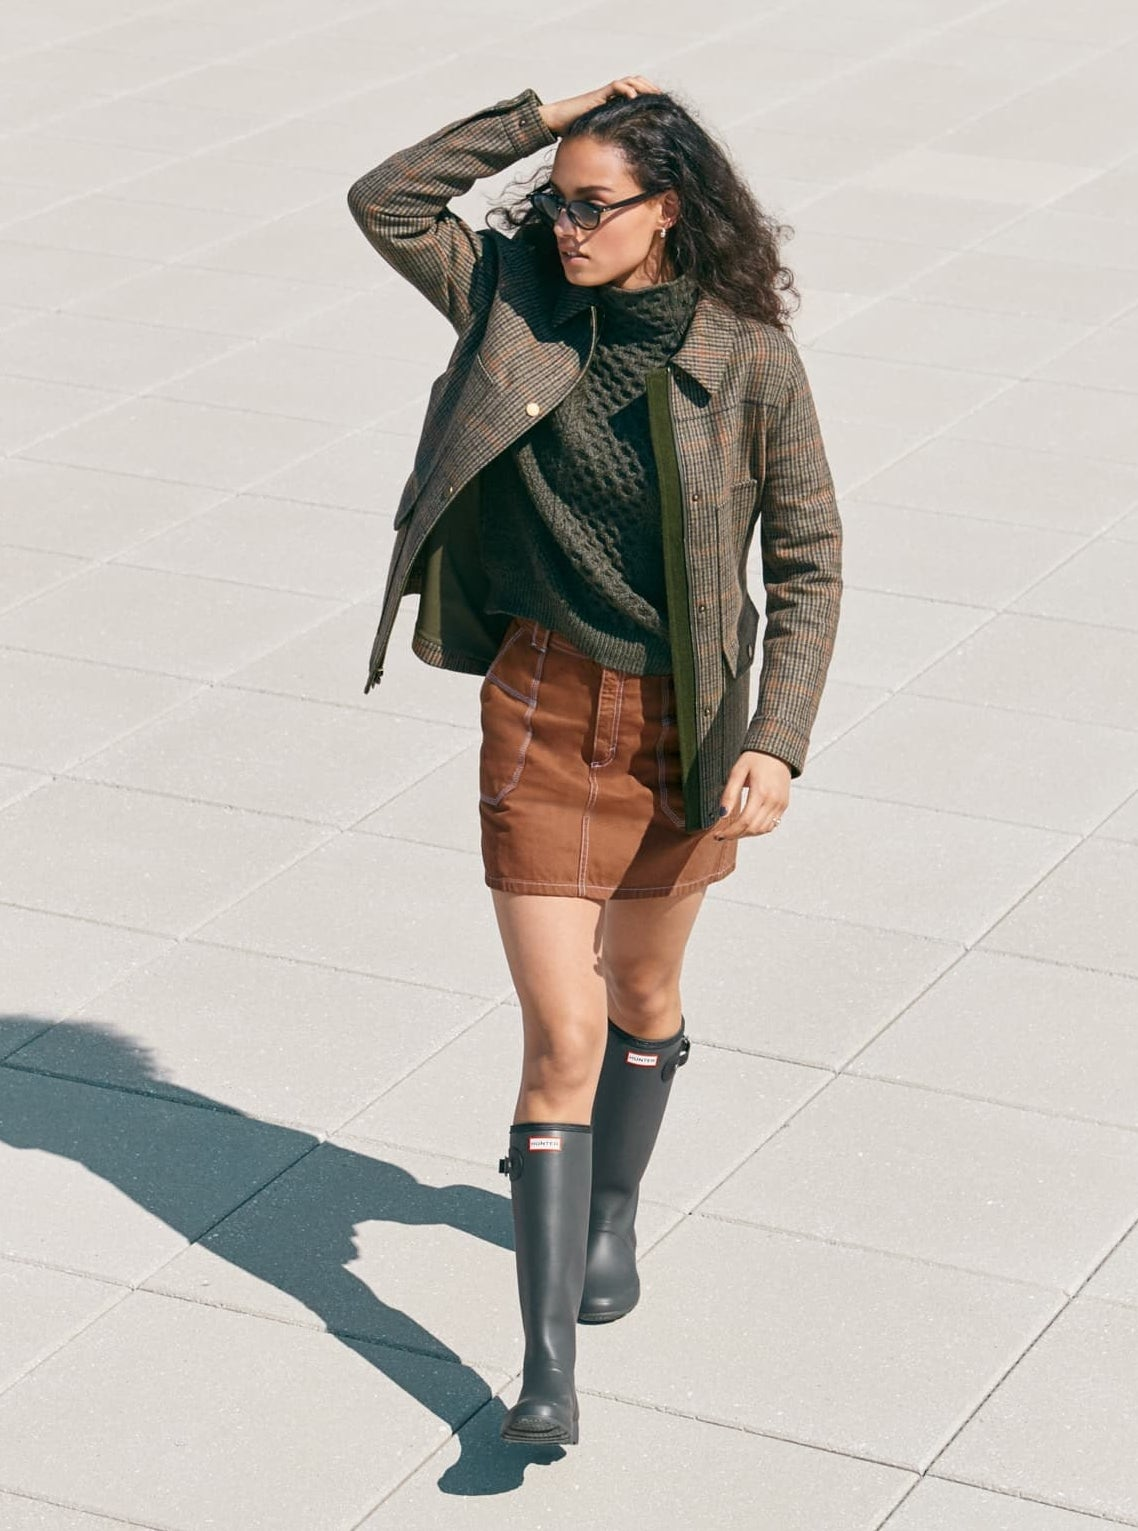 Model wearing the knee-high boots